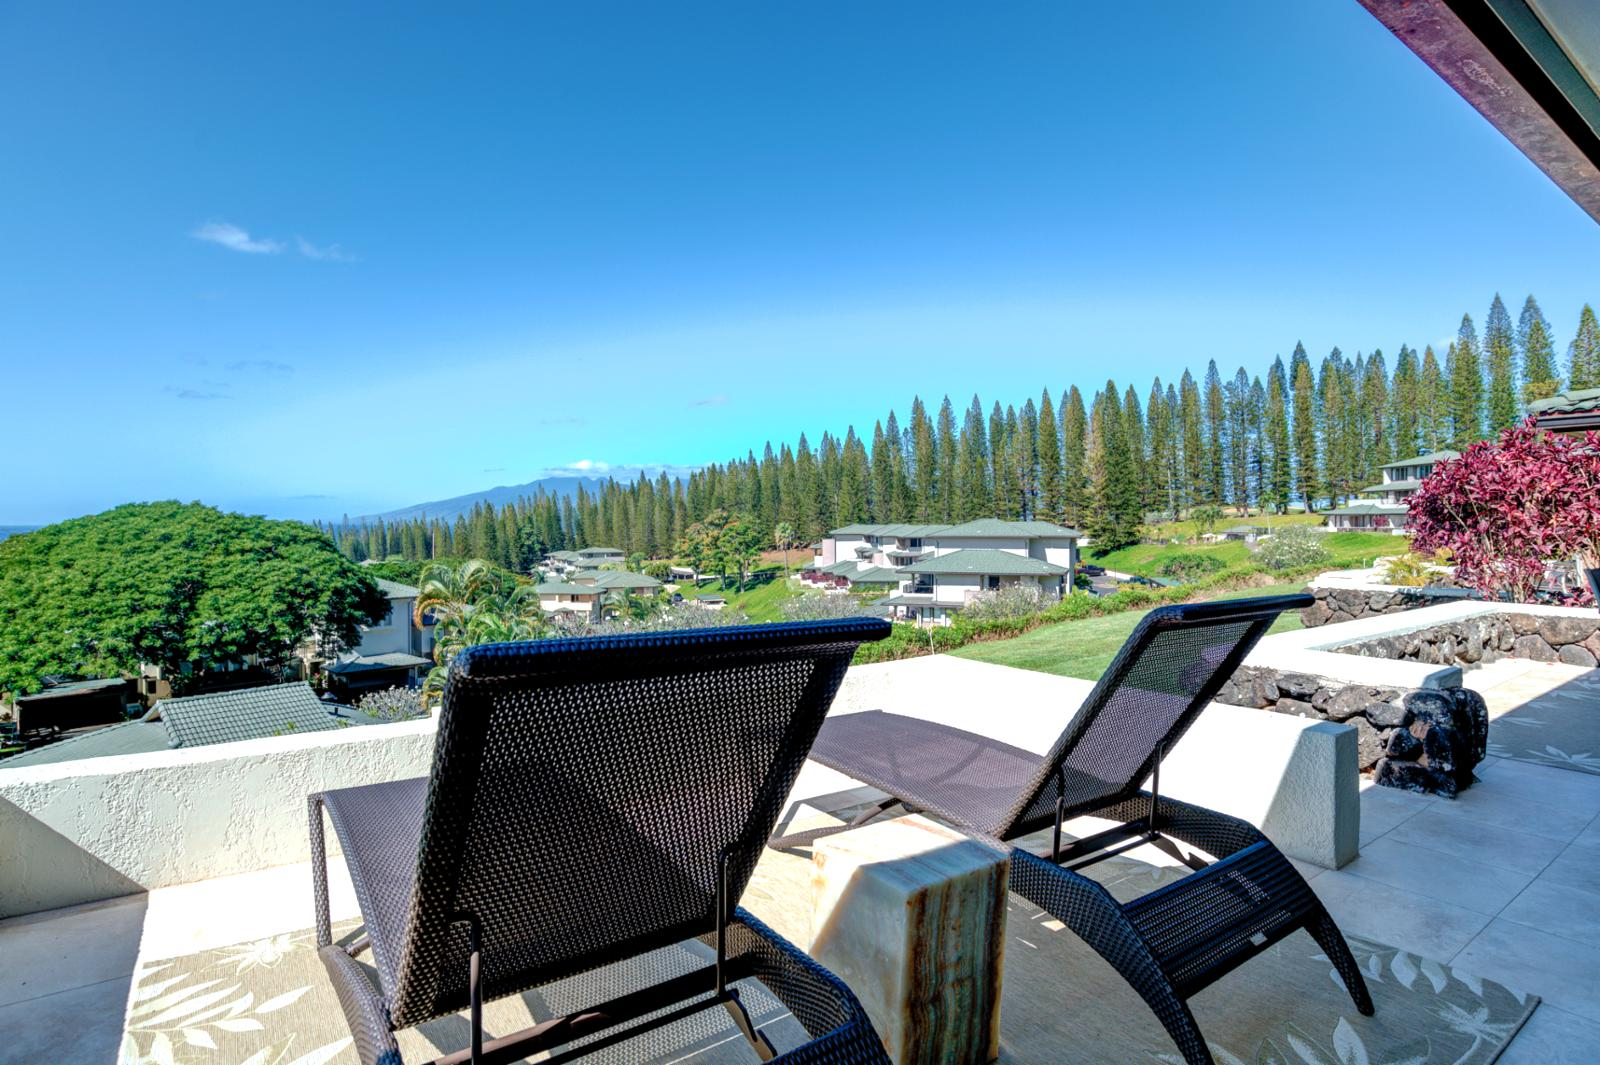 Stunning views of Molokai and resort grounds